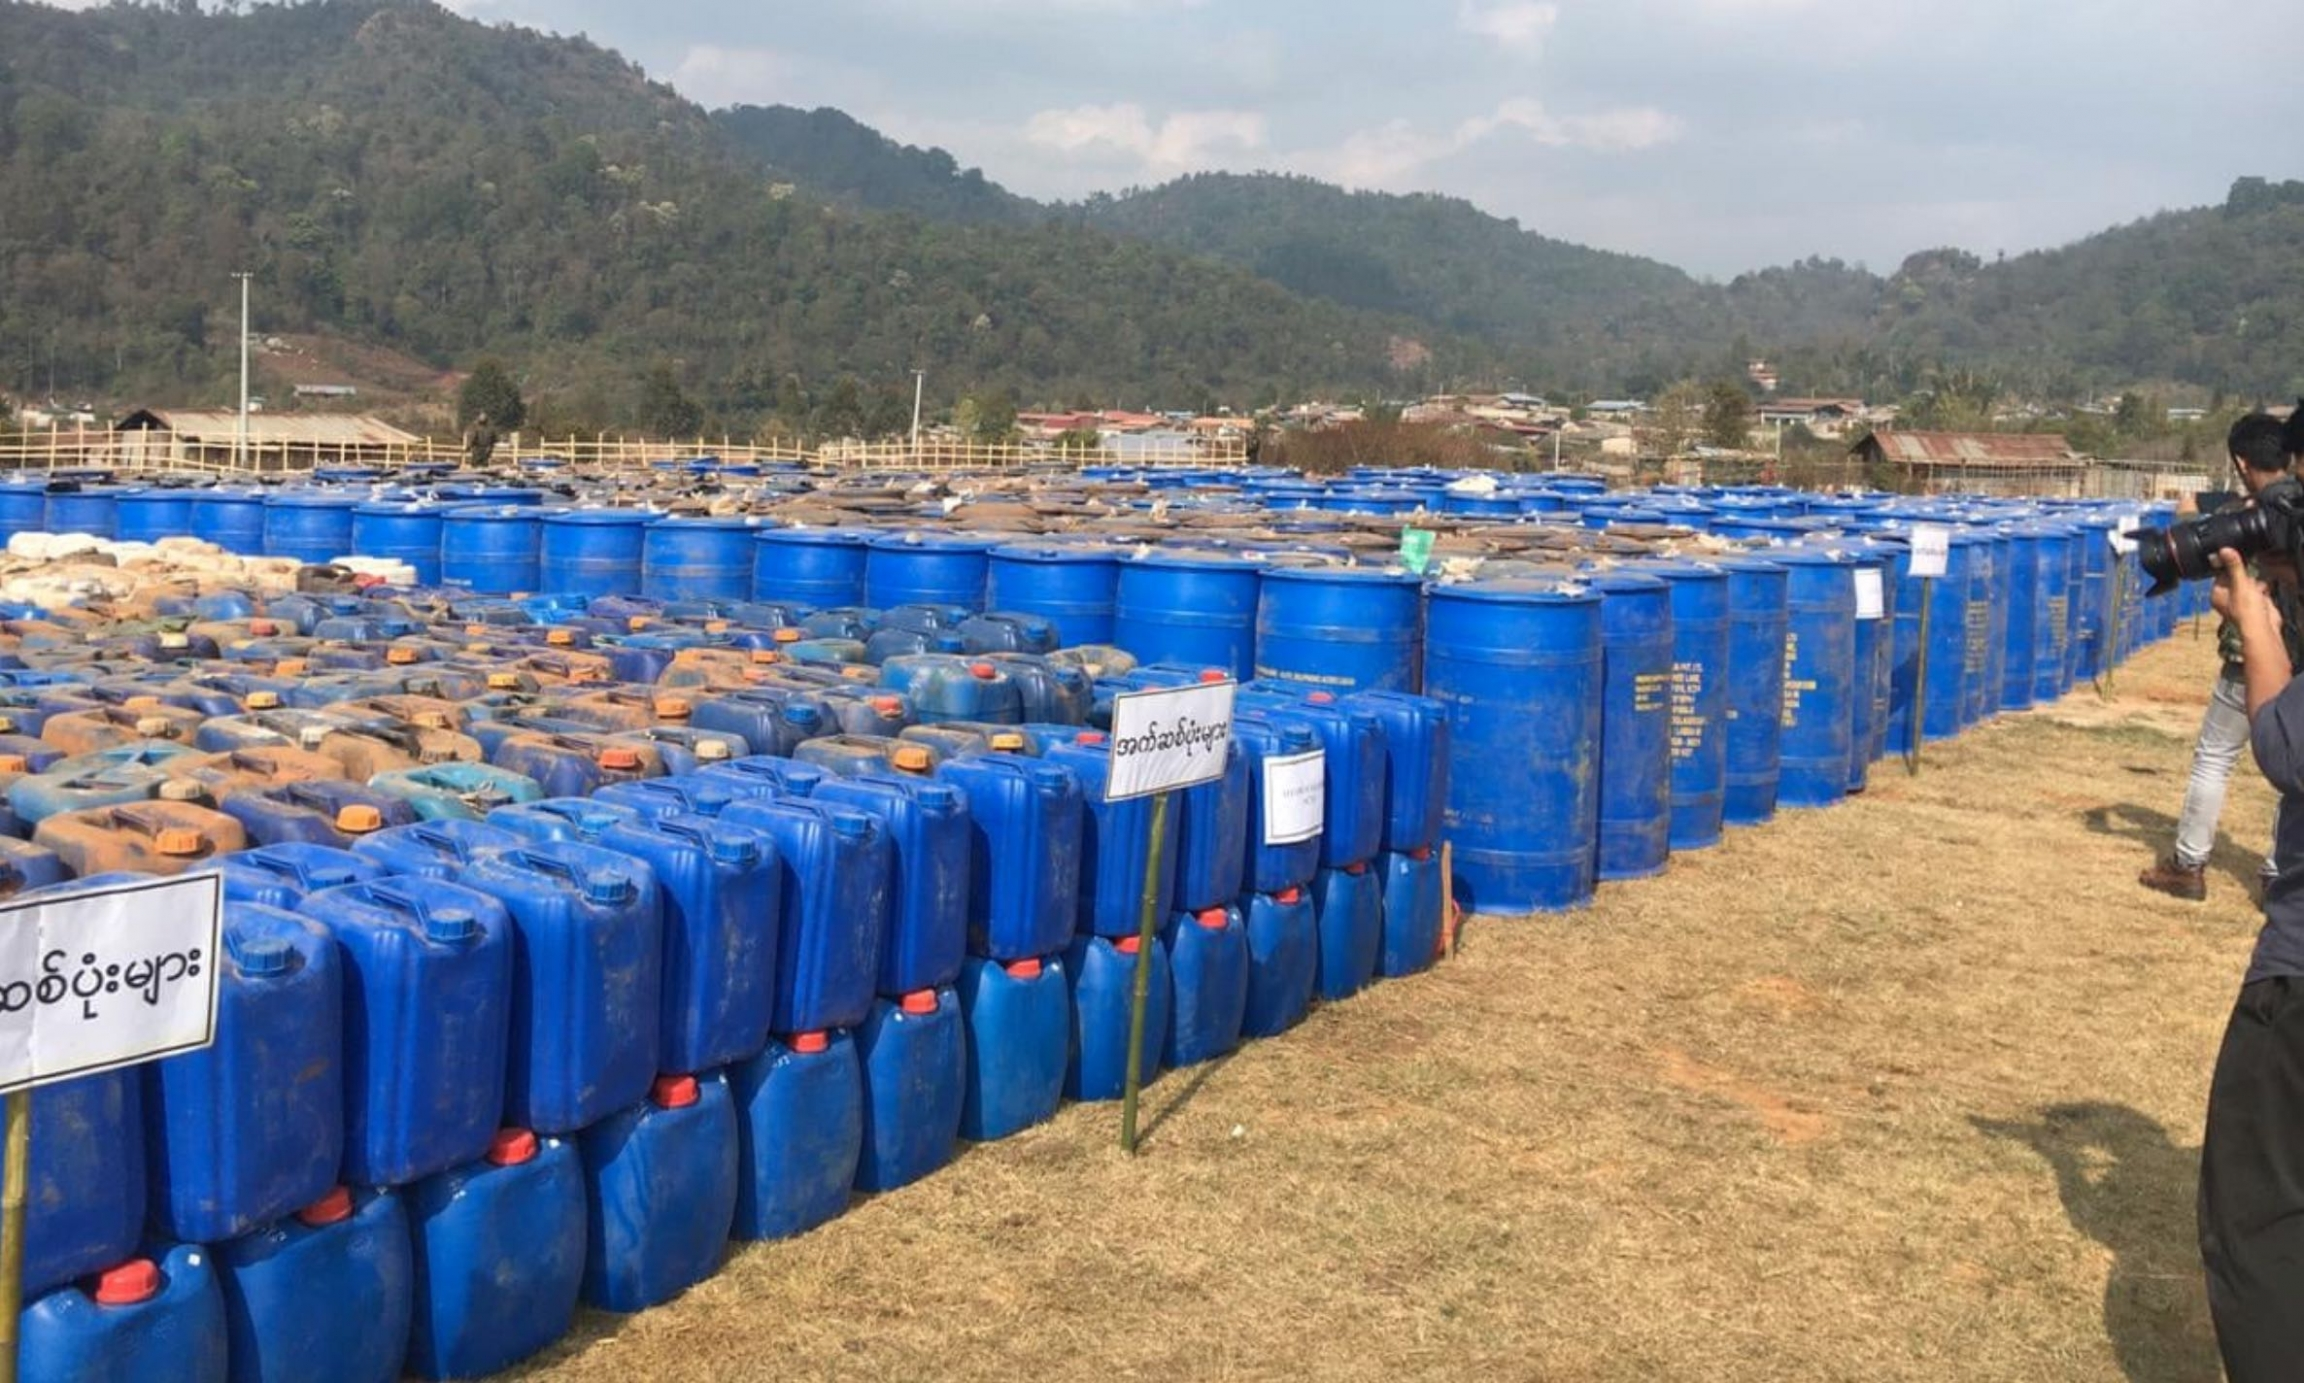 Barrels of chemicals seized from a drug lab in northern Myanmar.